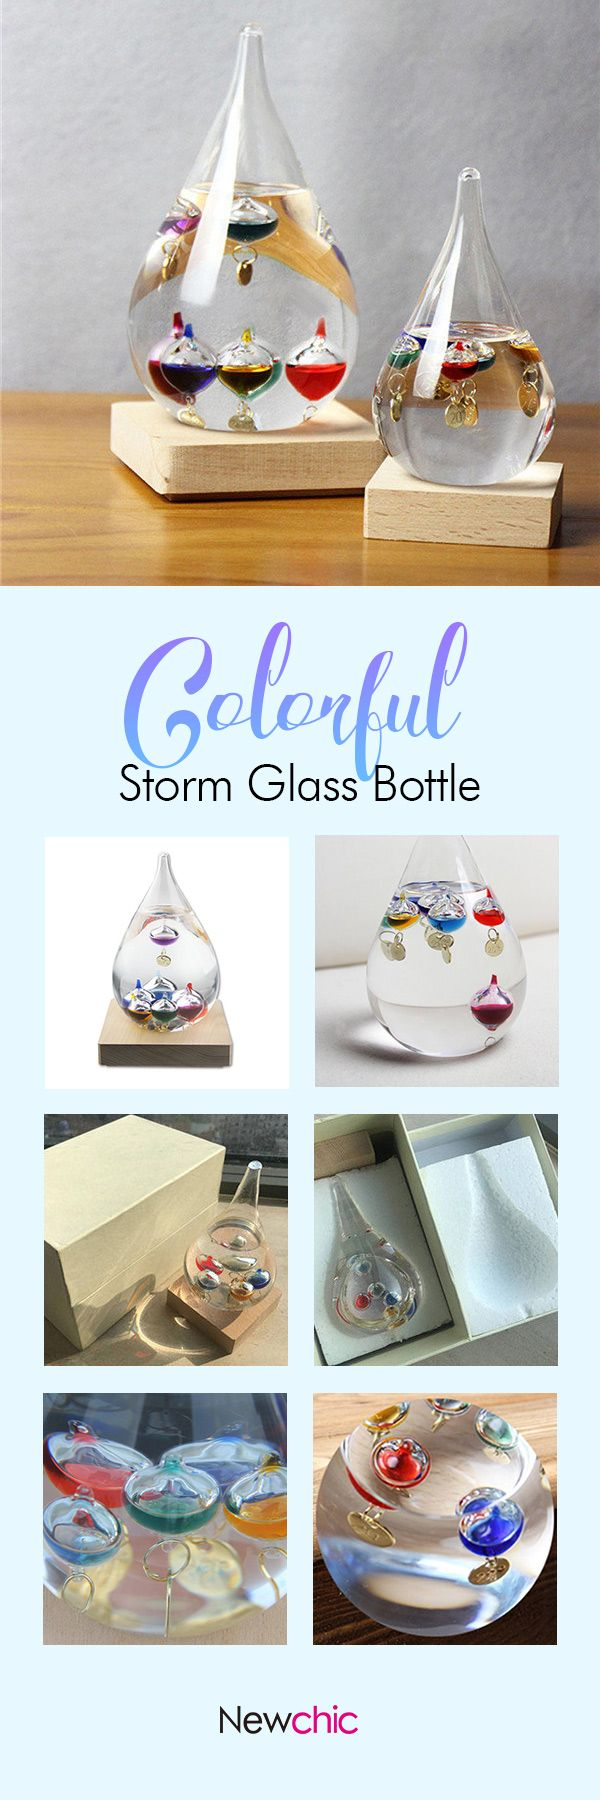 US$22.00 Colorful Galileo Thermometer Weather Temperature Forecast Storm Glass Bottle Christmas Gift#newchic#homedecor#party